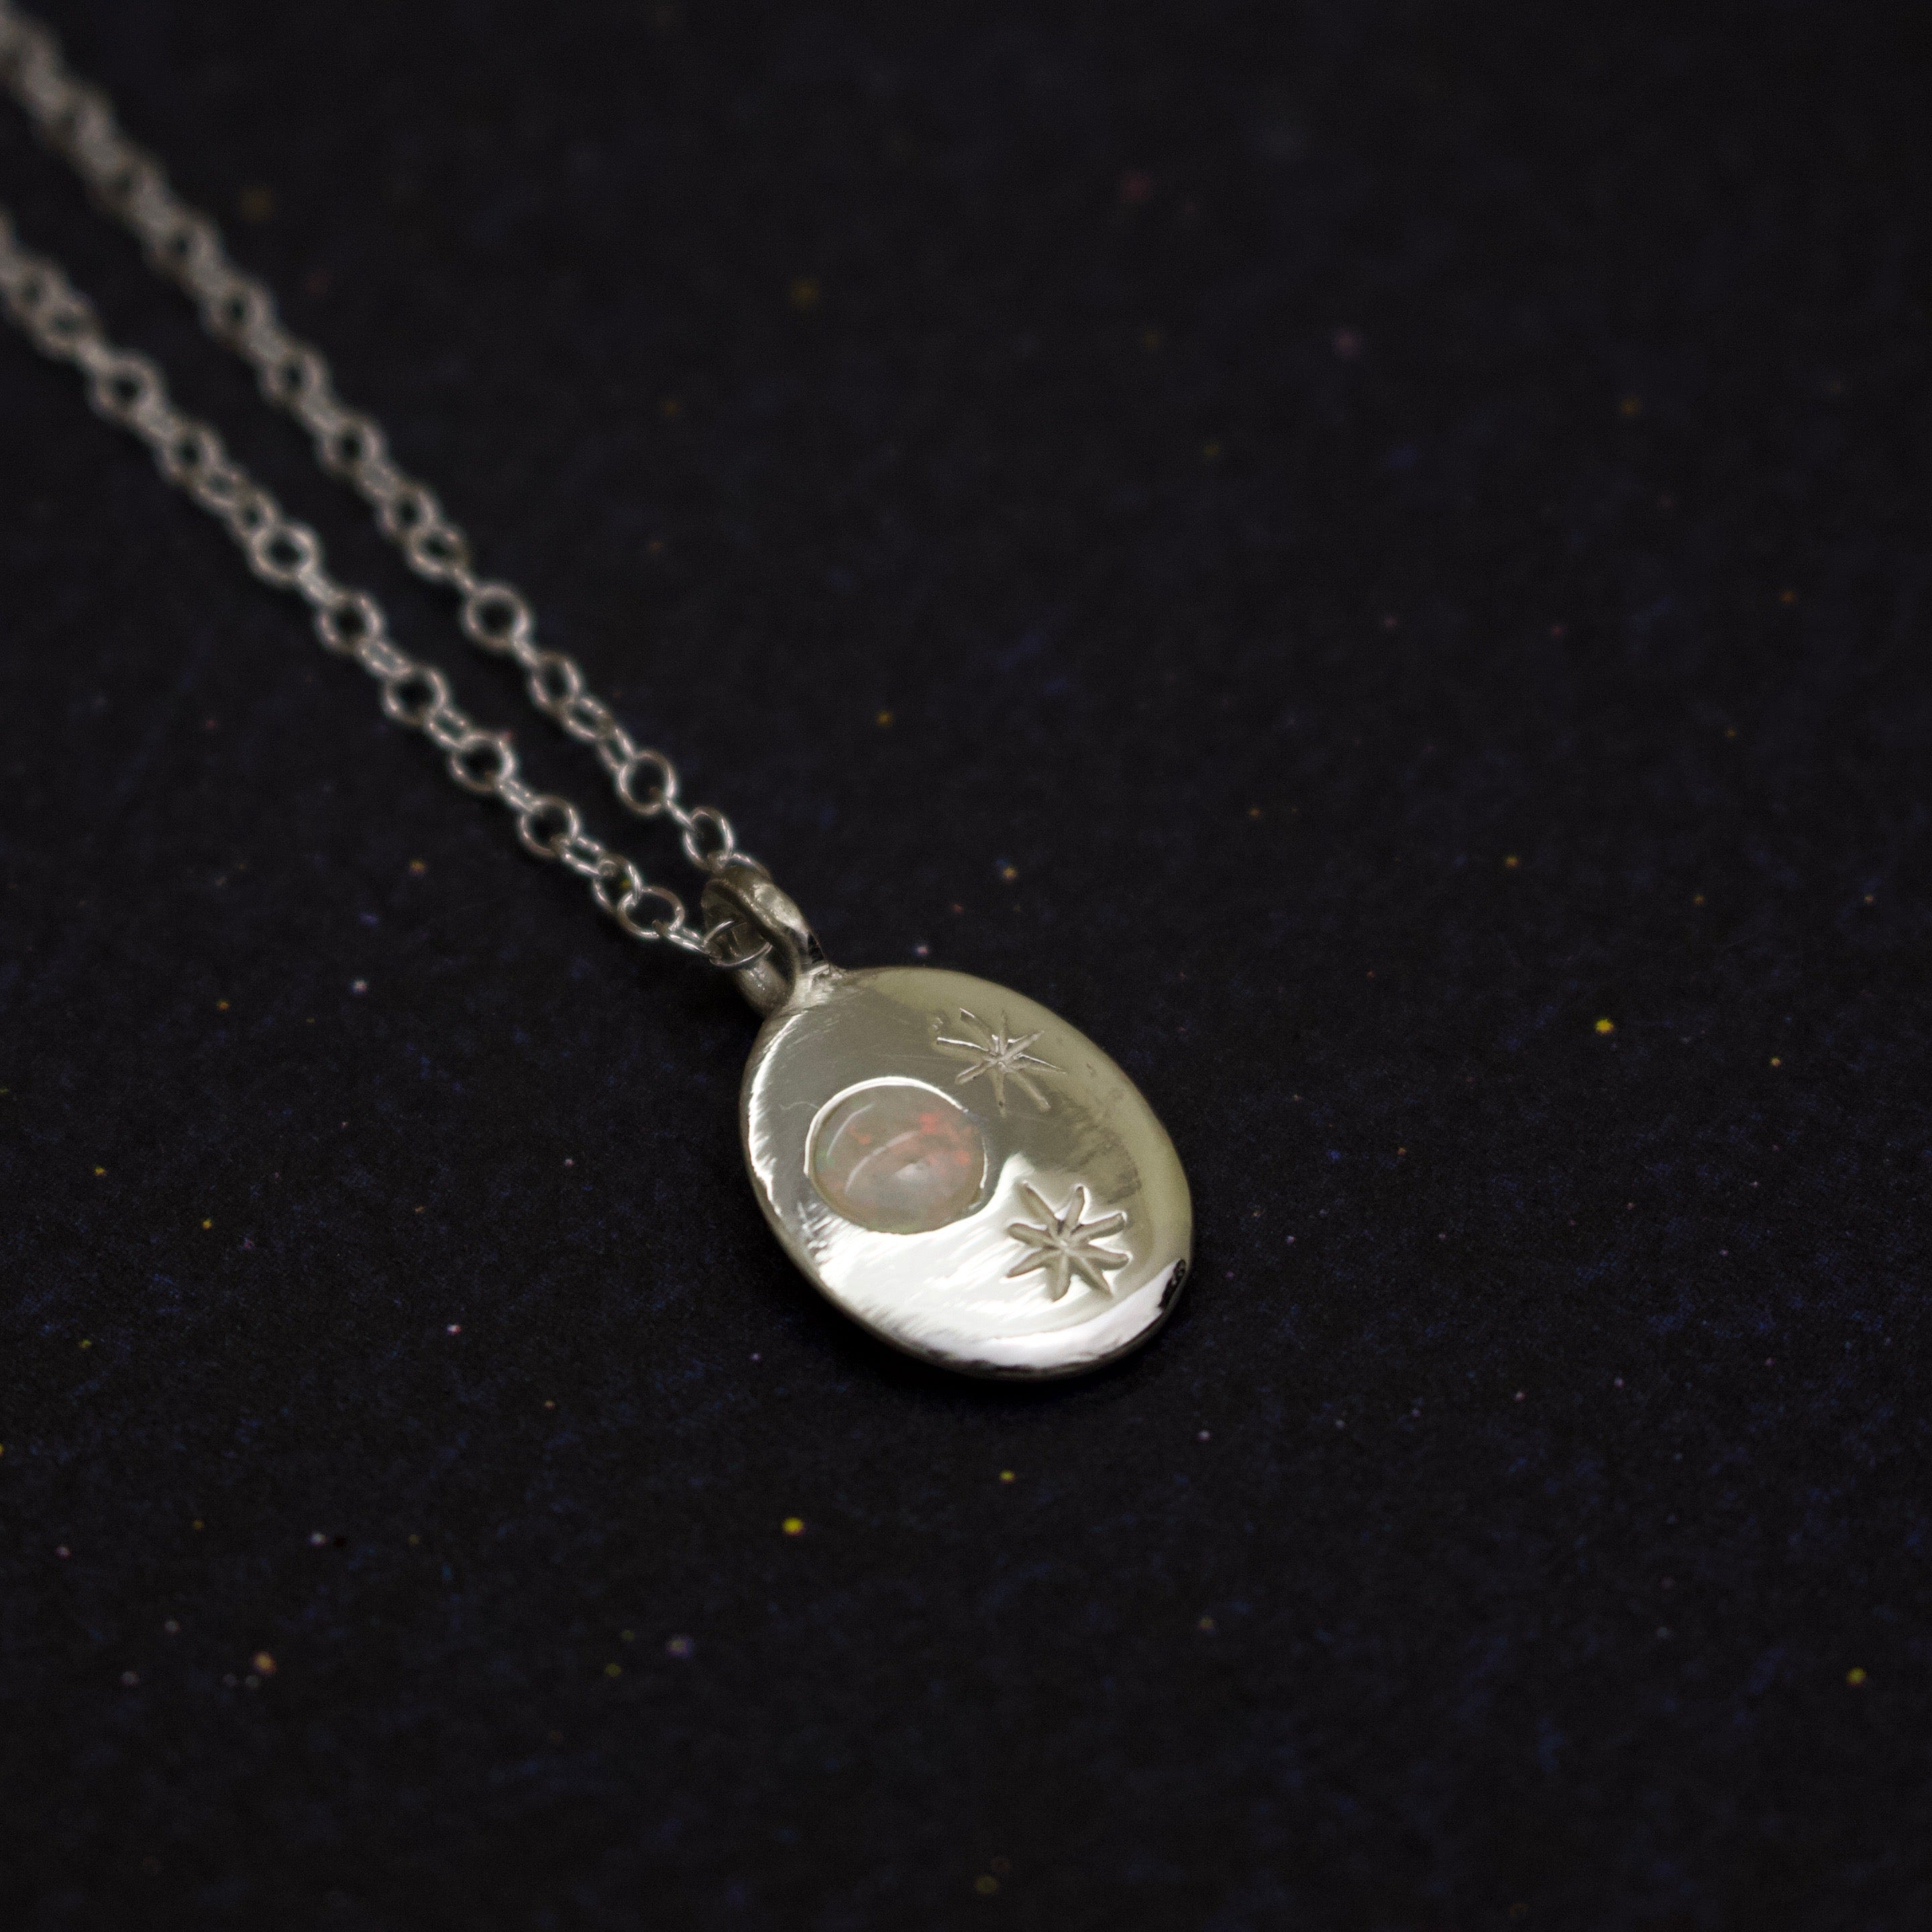 Nyx Necklace - Silver or 9ct Gold - Necklace The Serpents Club